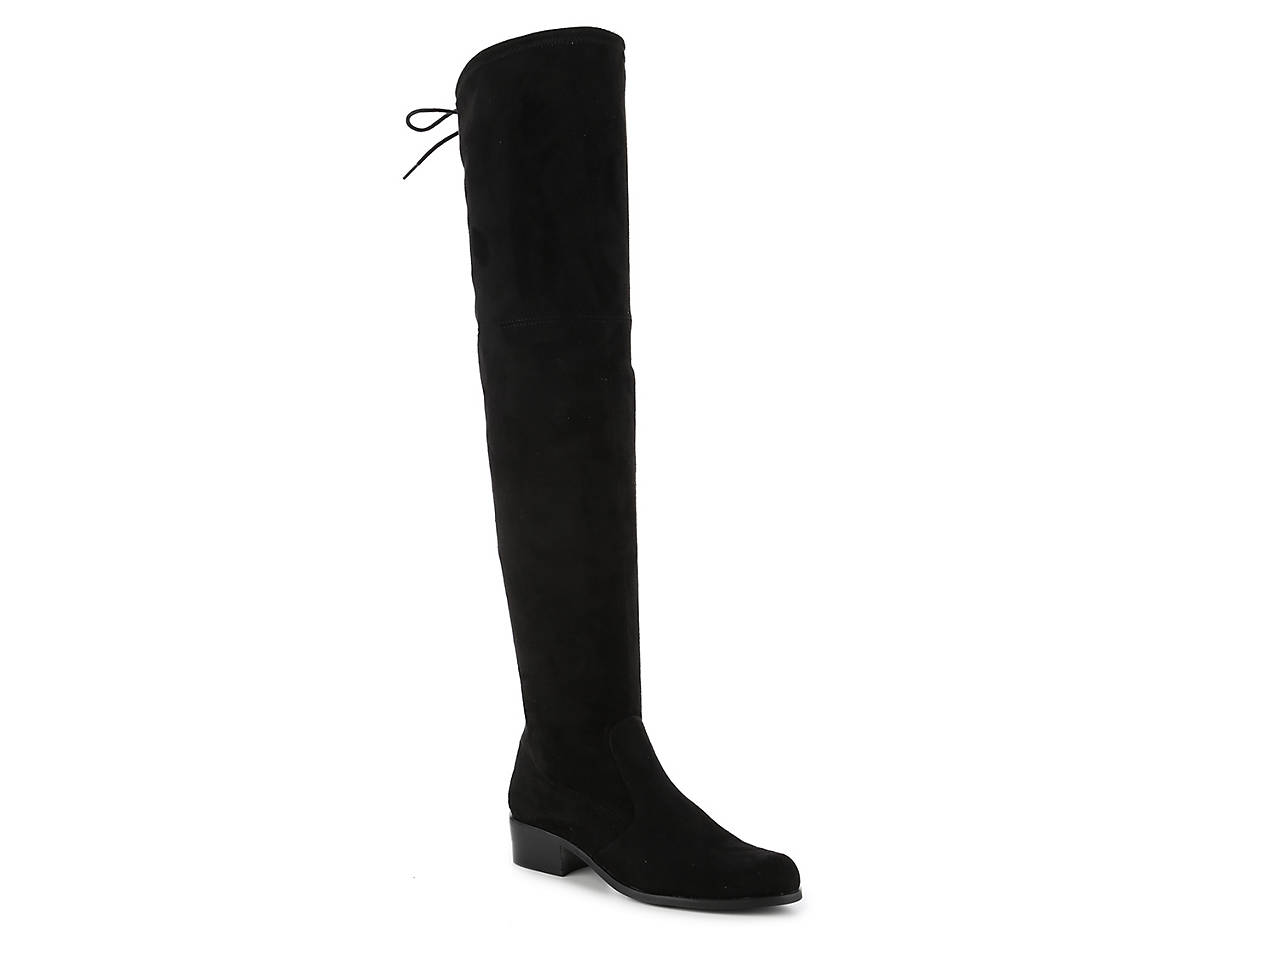 97b341cfbe1b Charles by Charles David Gunter Wide Calf Over The Knee Boot Men s ...